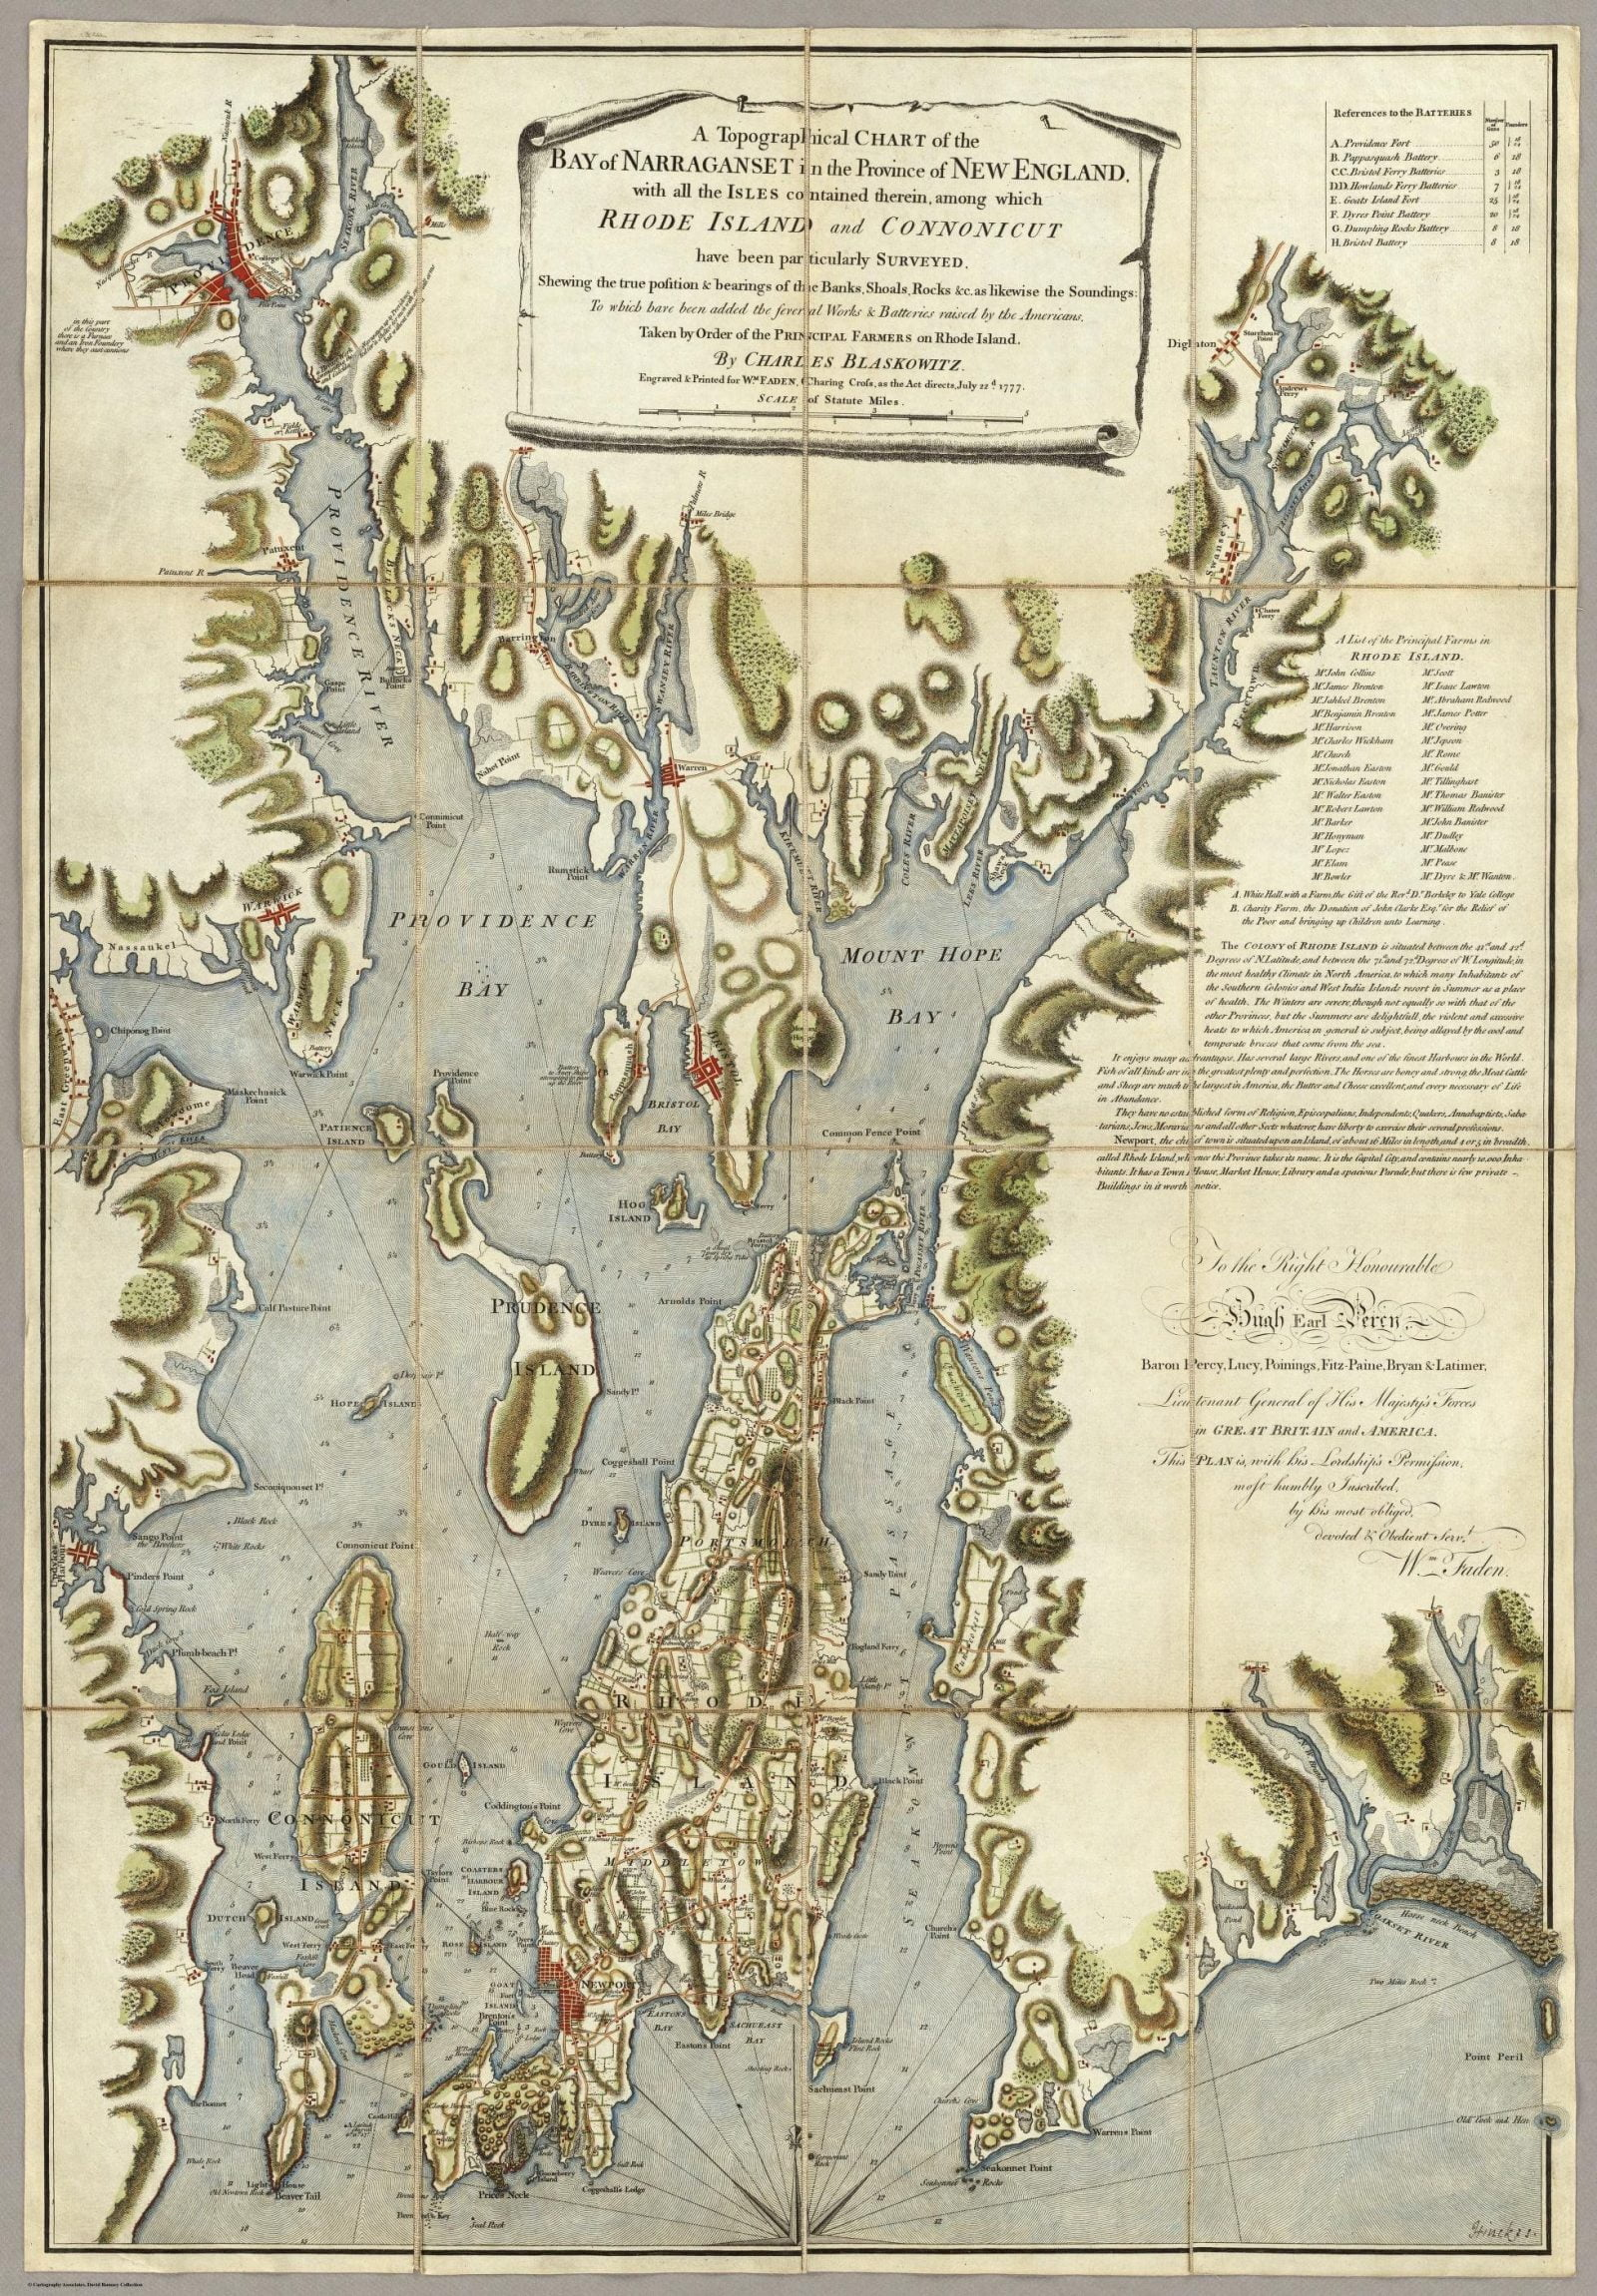 A Topograhical Chart of the Bay of Narraganset in the Province of New England, 1777, by Charles Blaskowitz